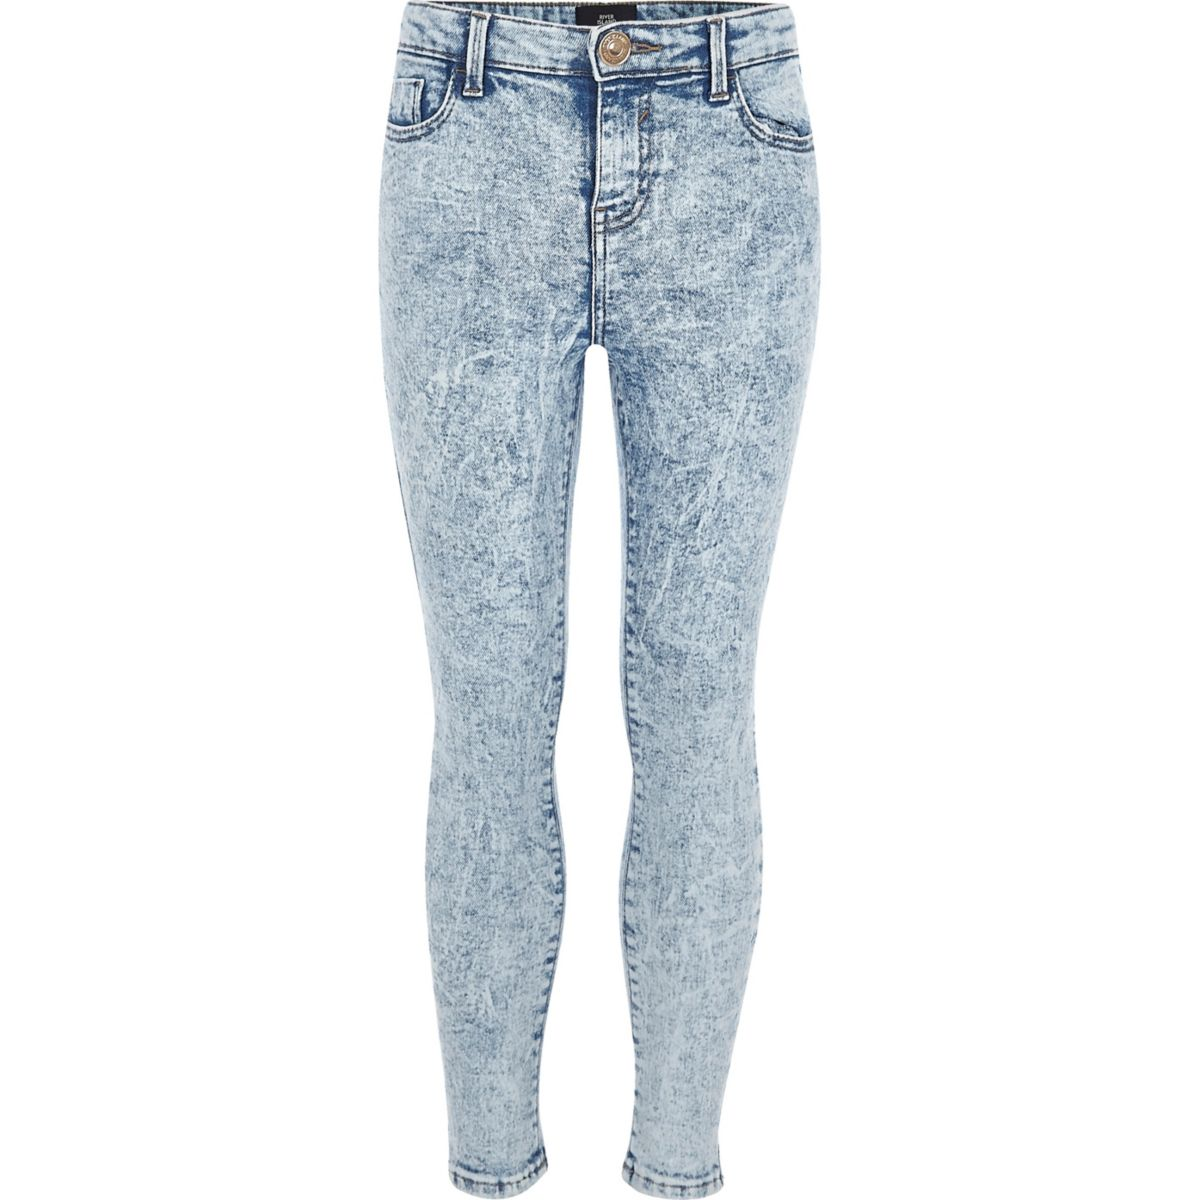 Light Blue Skinny Jeans Women